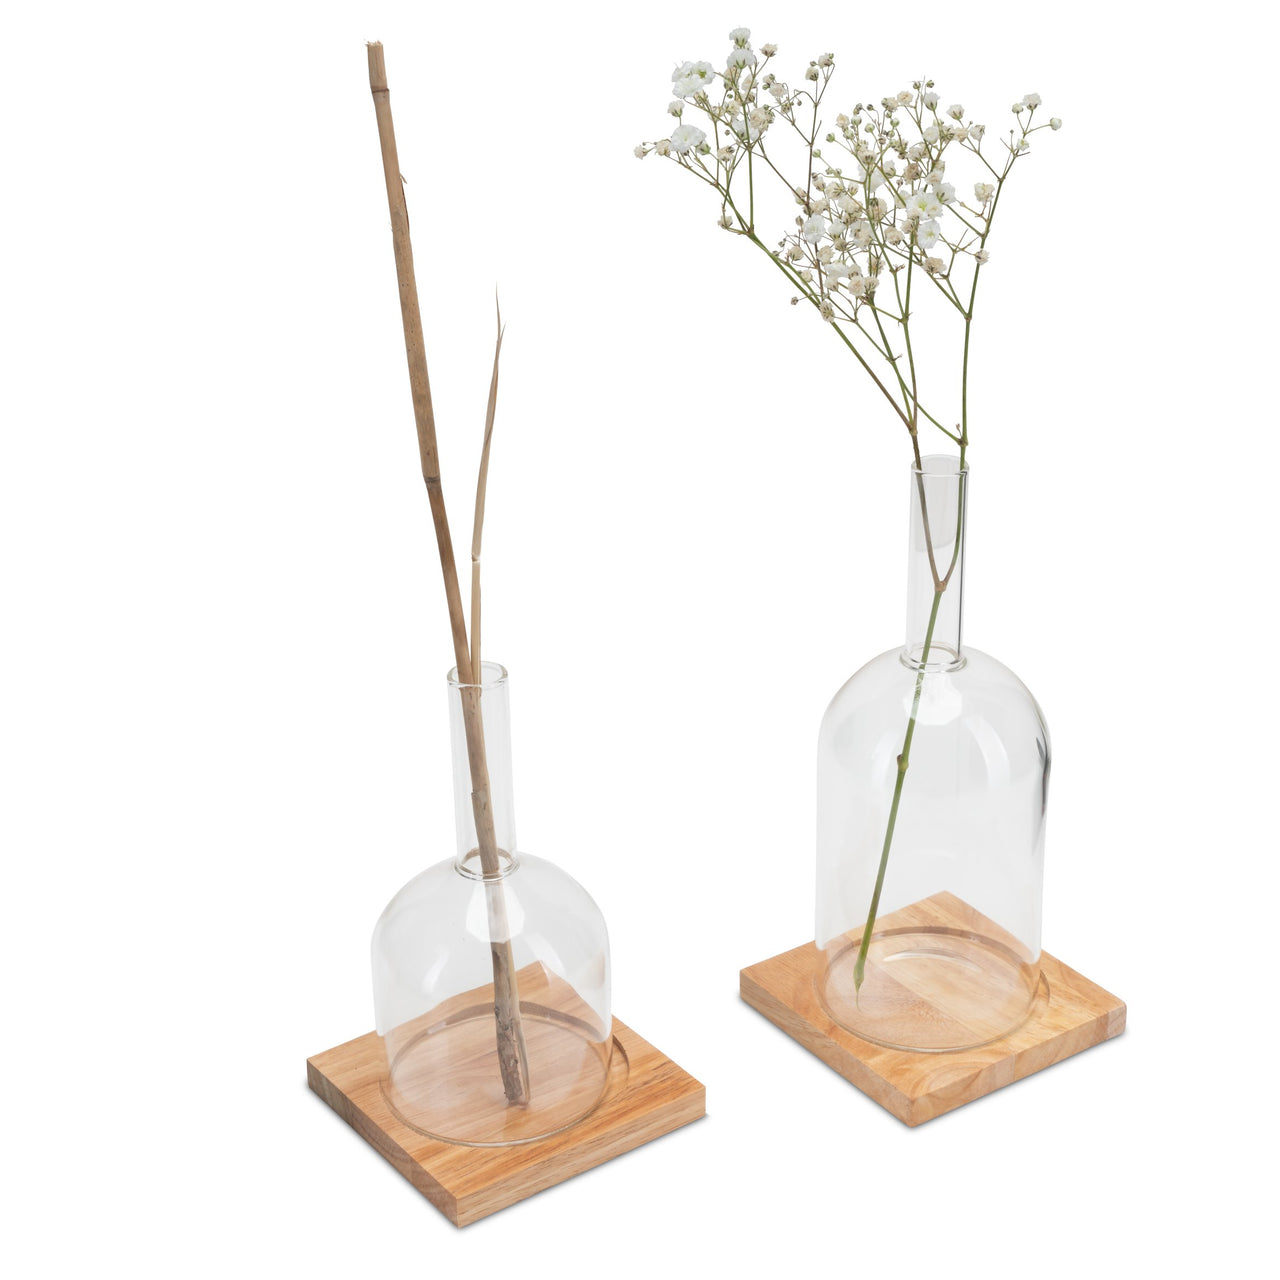 Dopio Spere Flaschenvase, 2er Set